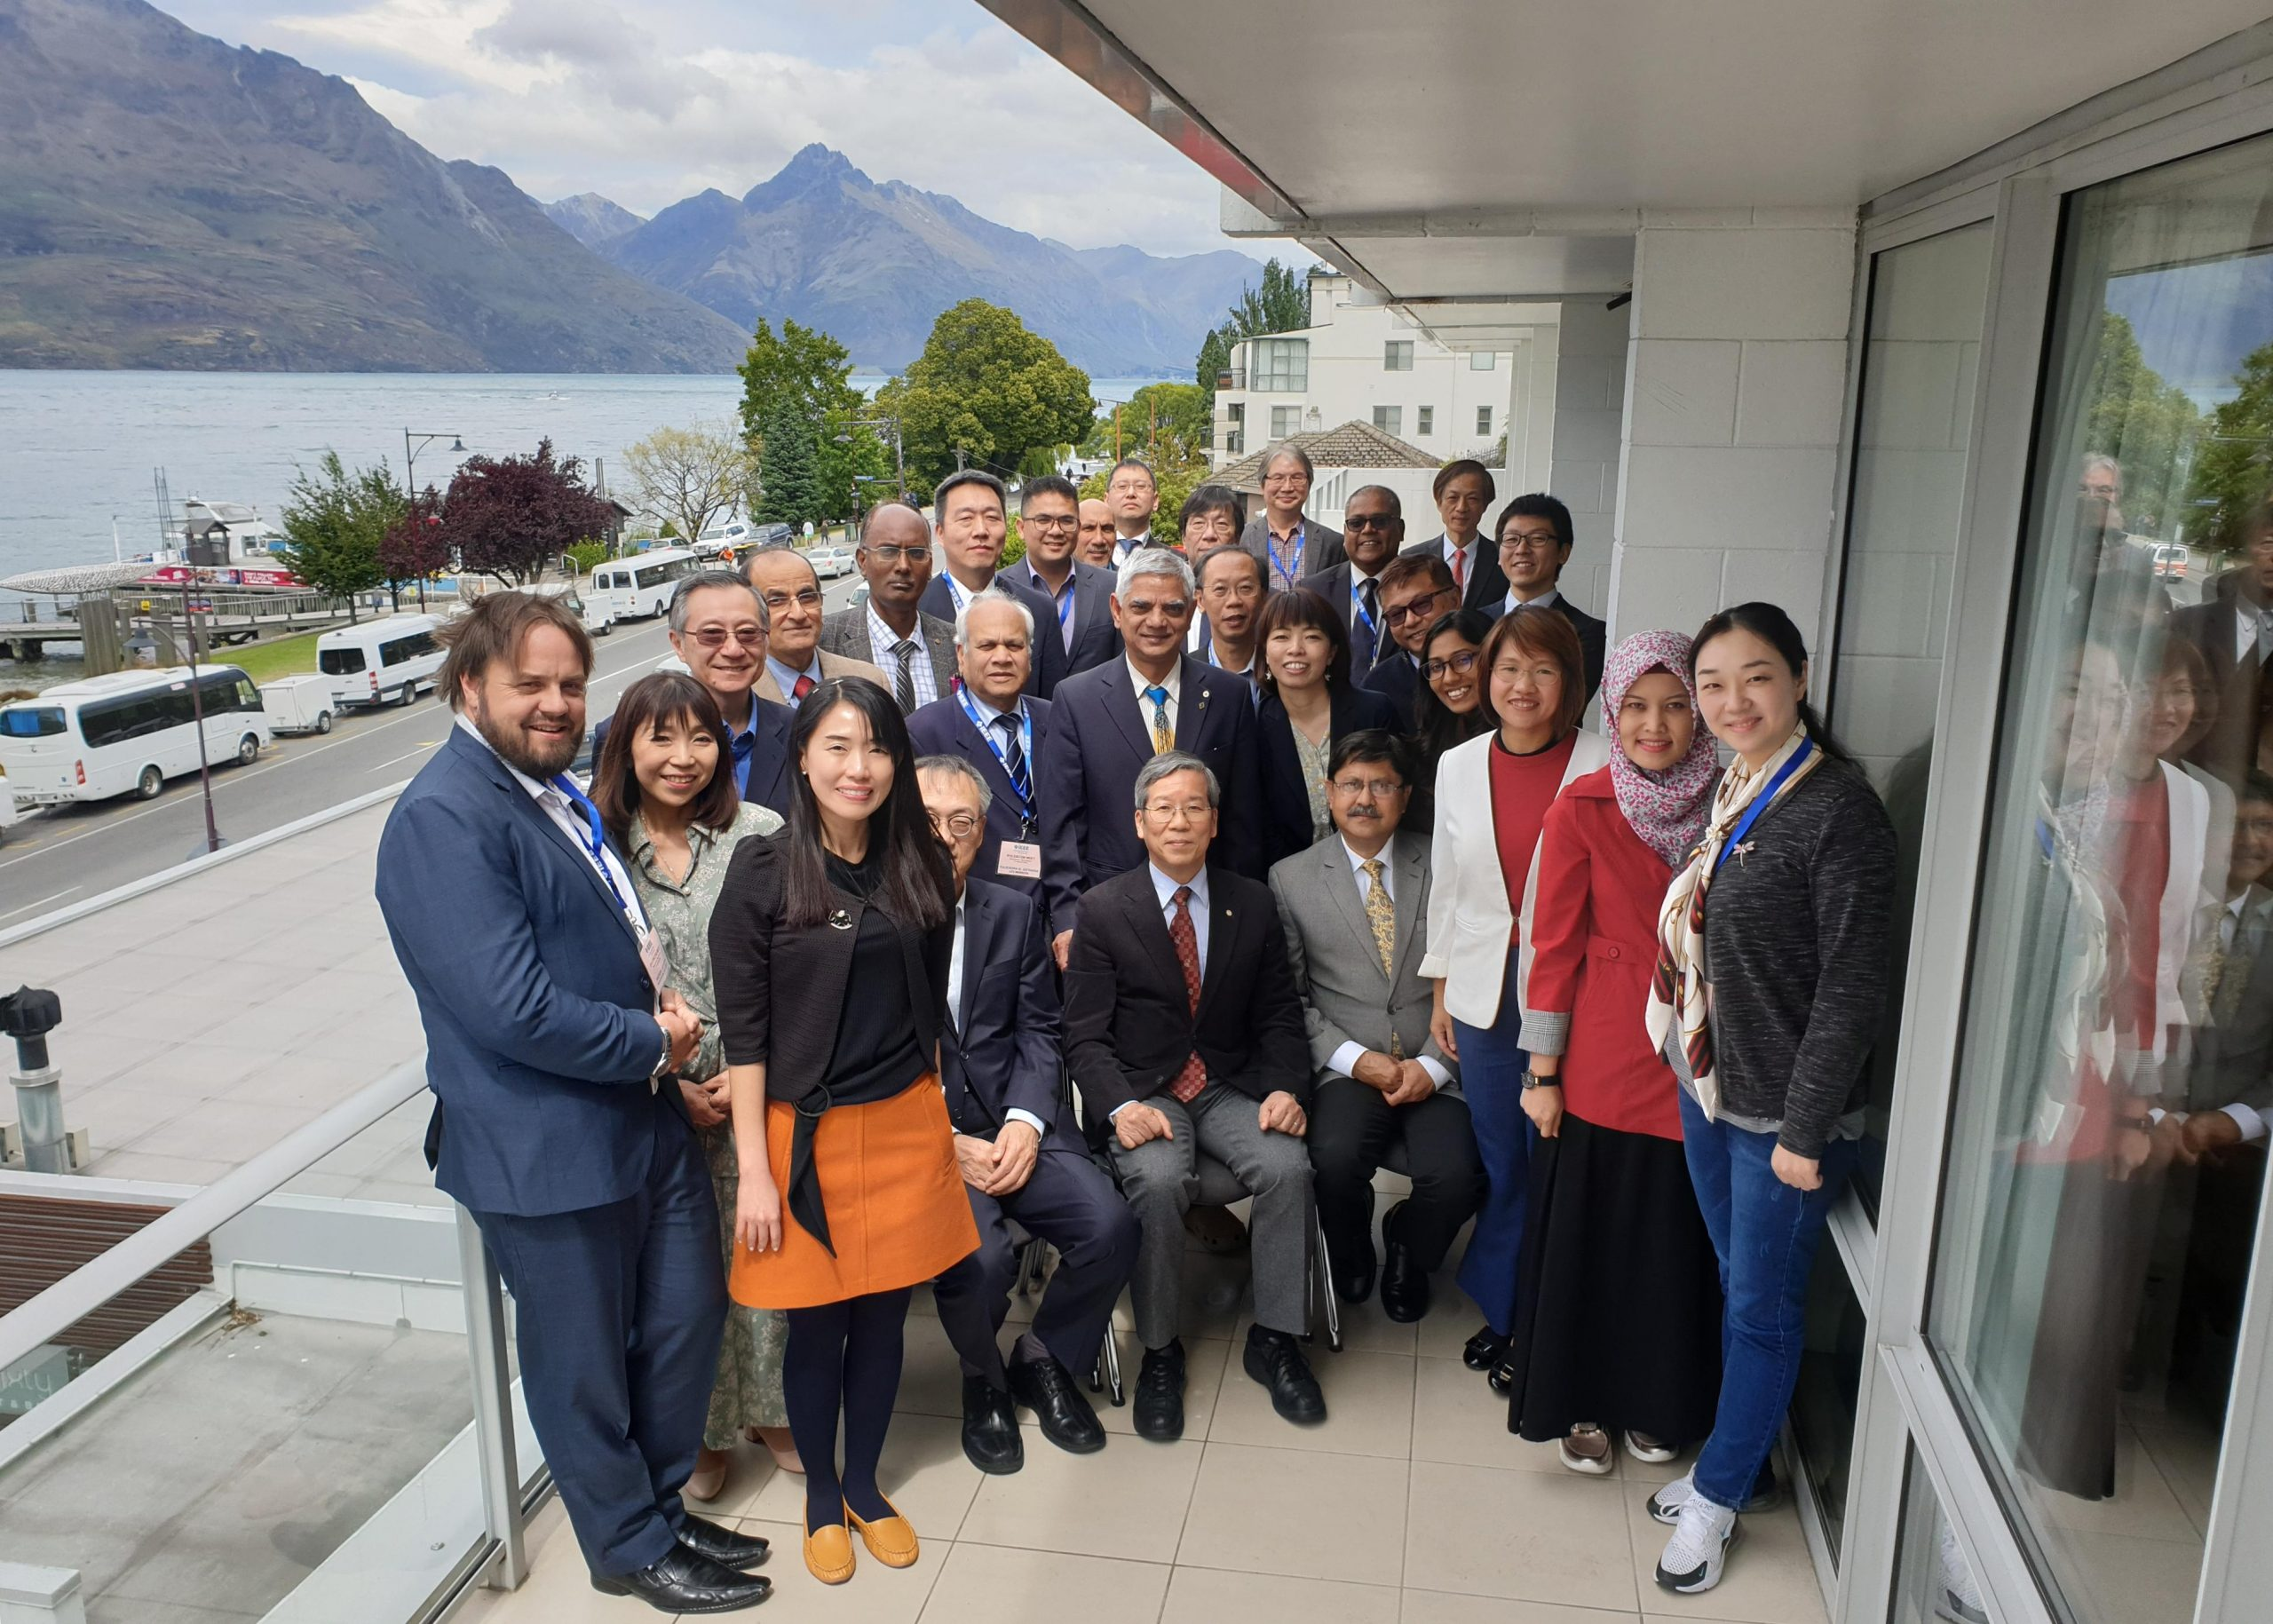 Attendees with Lake Wakatipu in the back